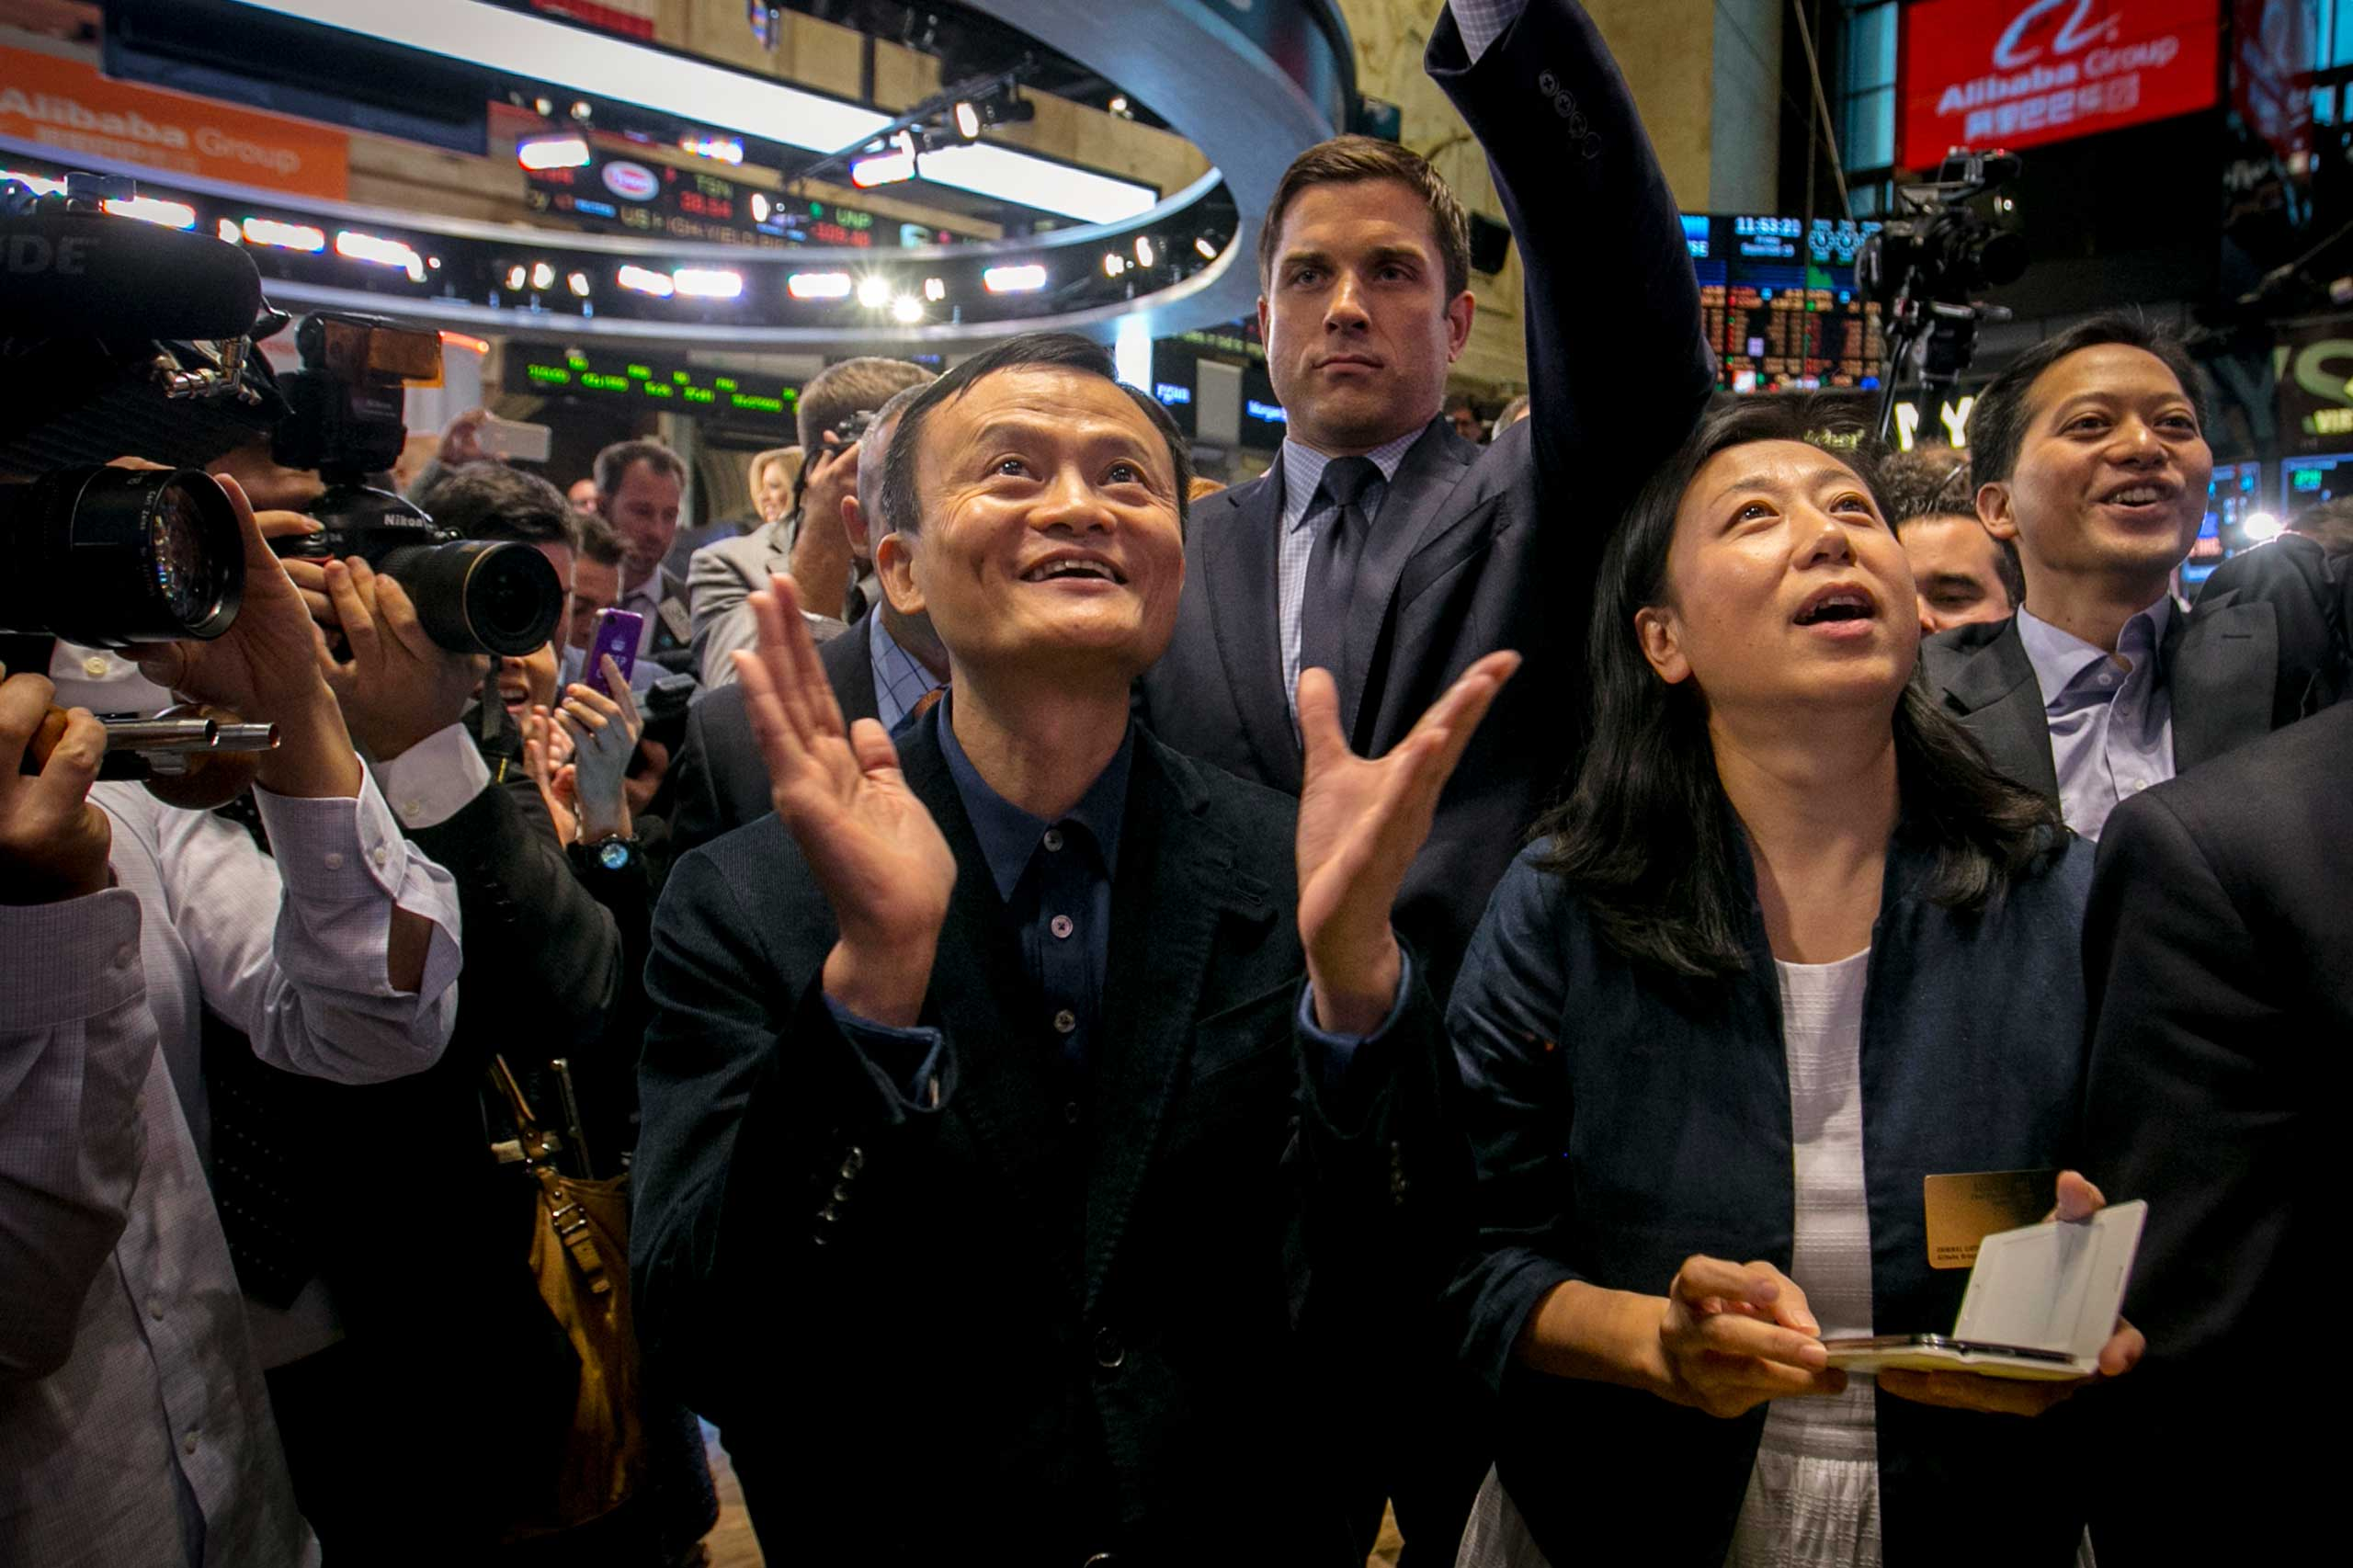 Alibaba Ipo Flies High On Wall Street Time Alibaba has documented its company history since its founding 15 years ago. alibaba ipo flies high on wall street time